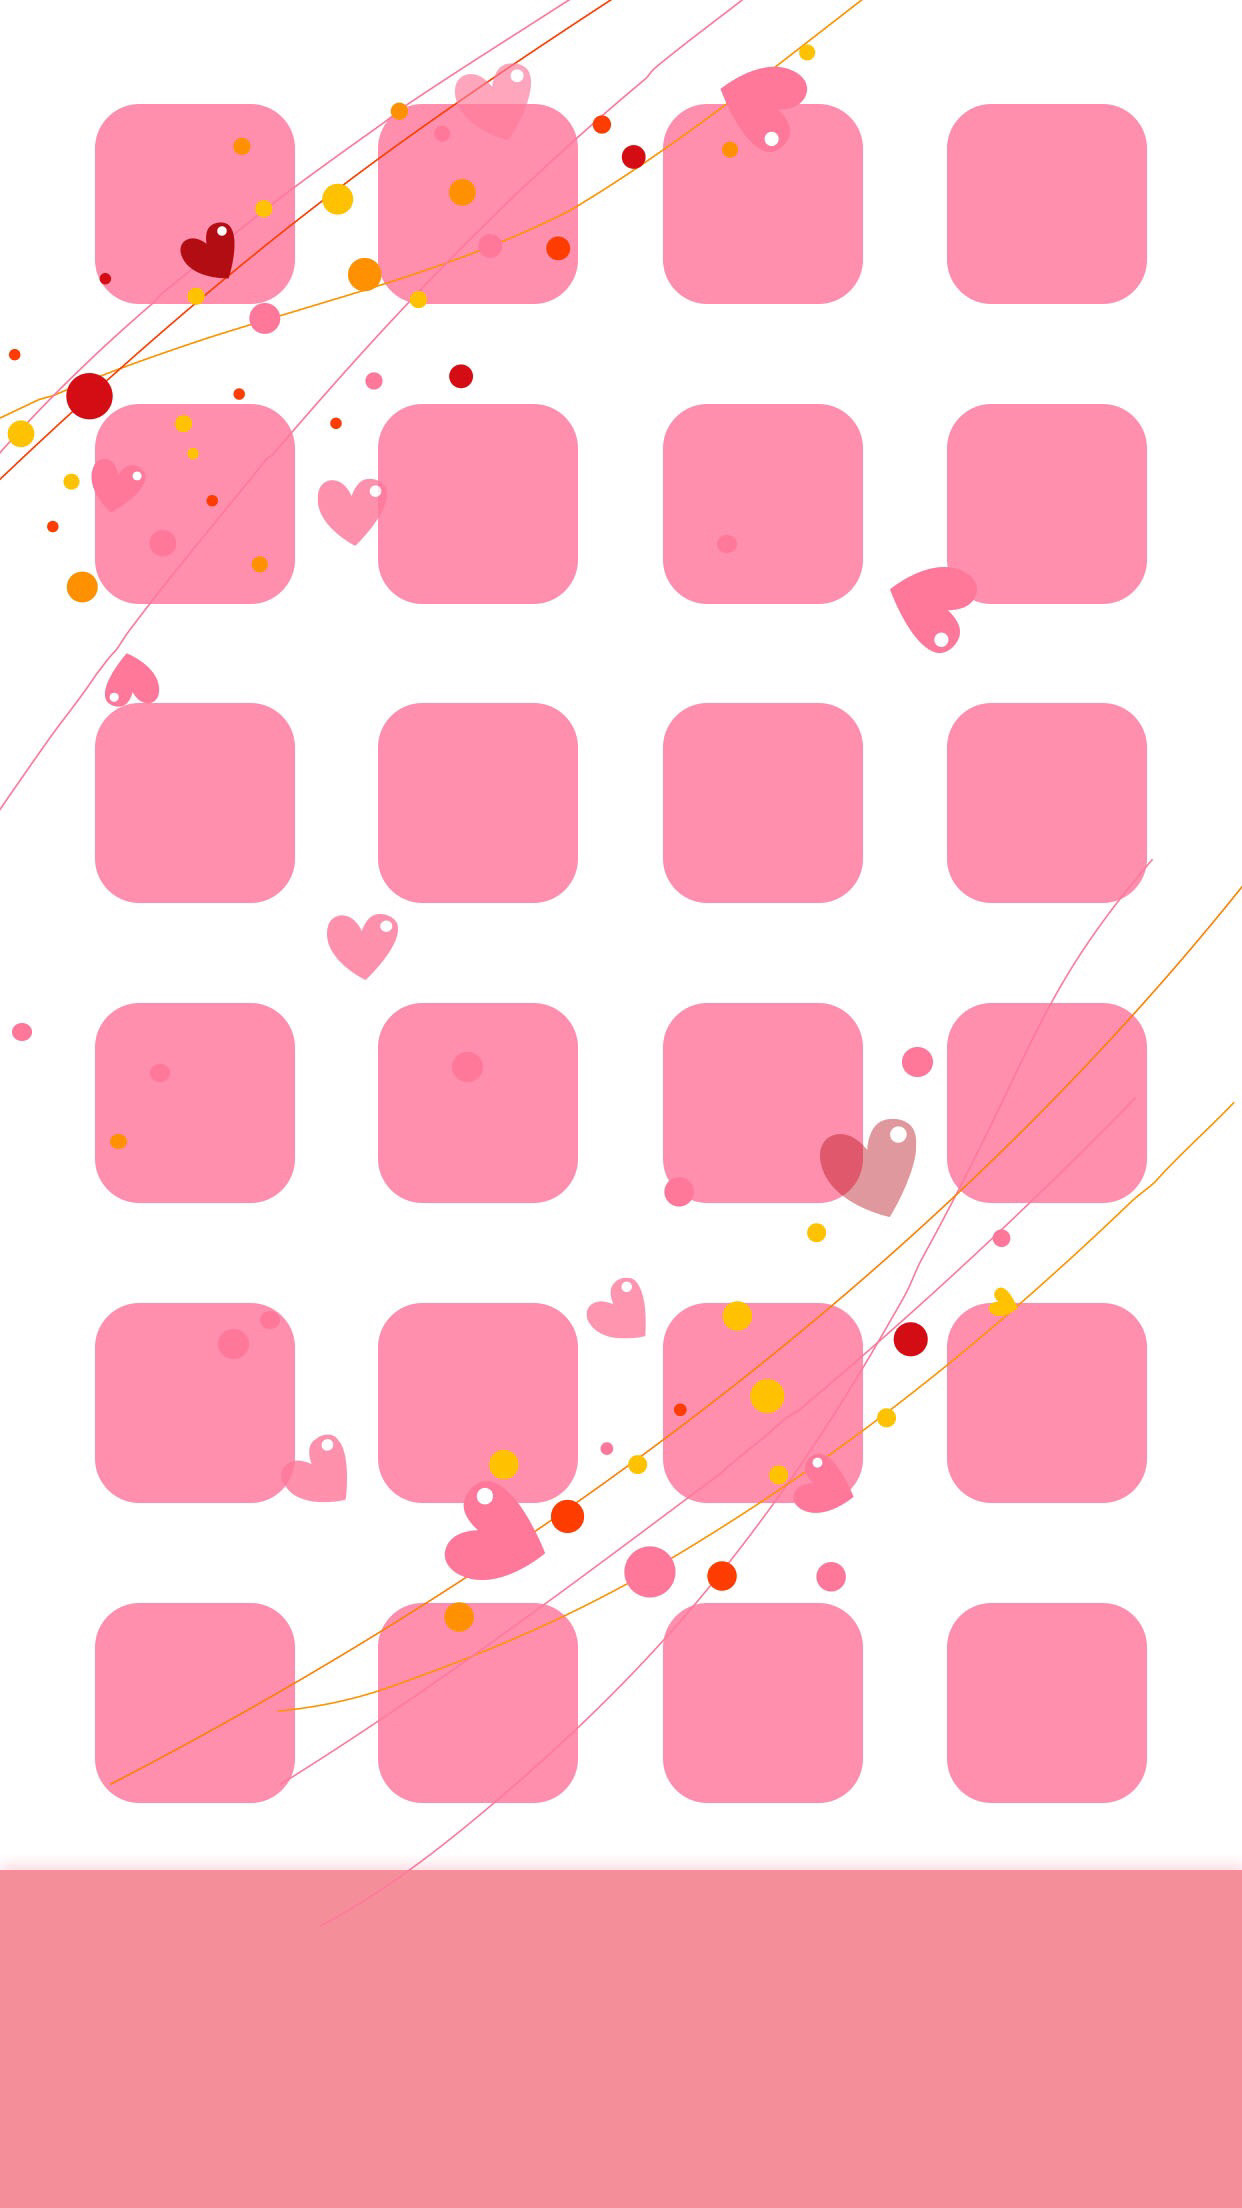 Free Cool Girly Wallpaper For Iphone